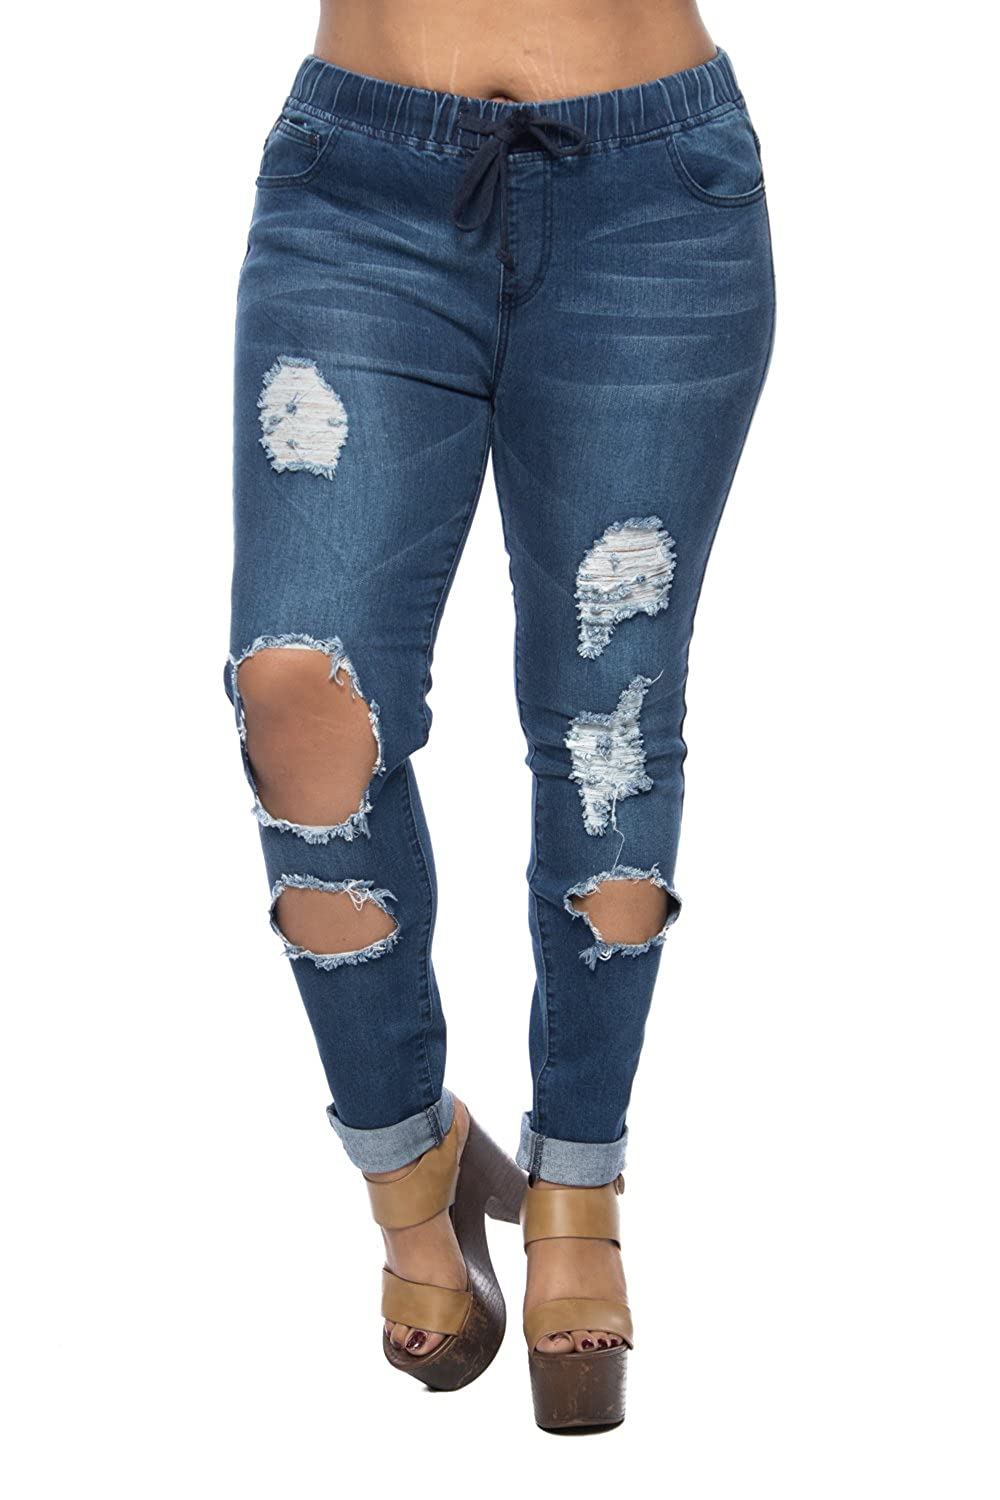 Womens Plus Ripped Washed Rolled Up Skinny Sexy Denim Jeans RJJ-428